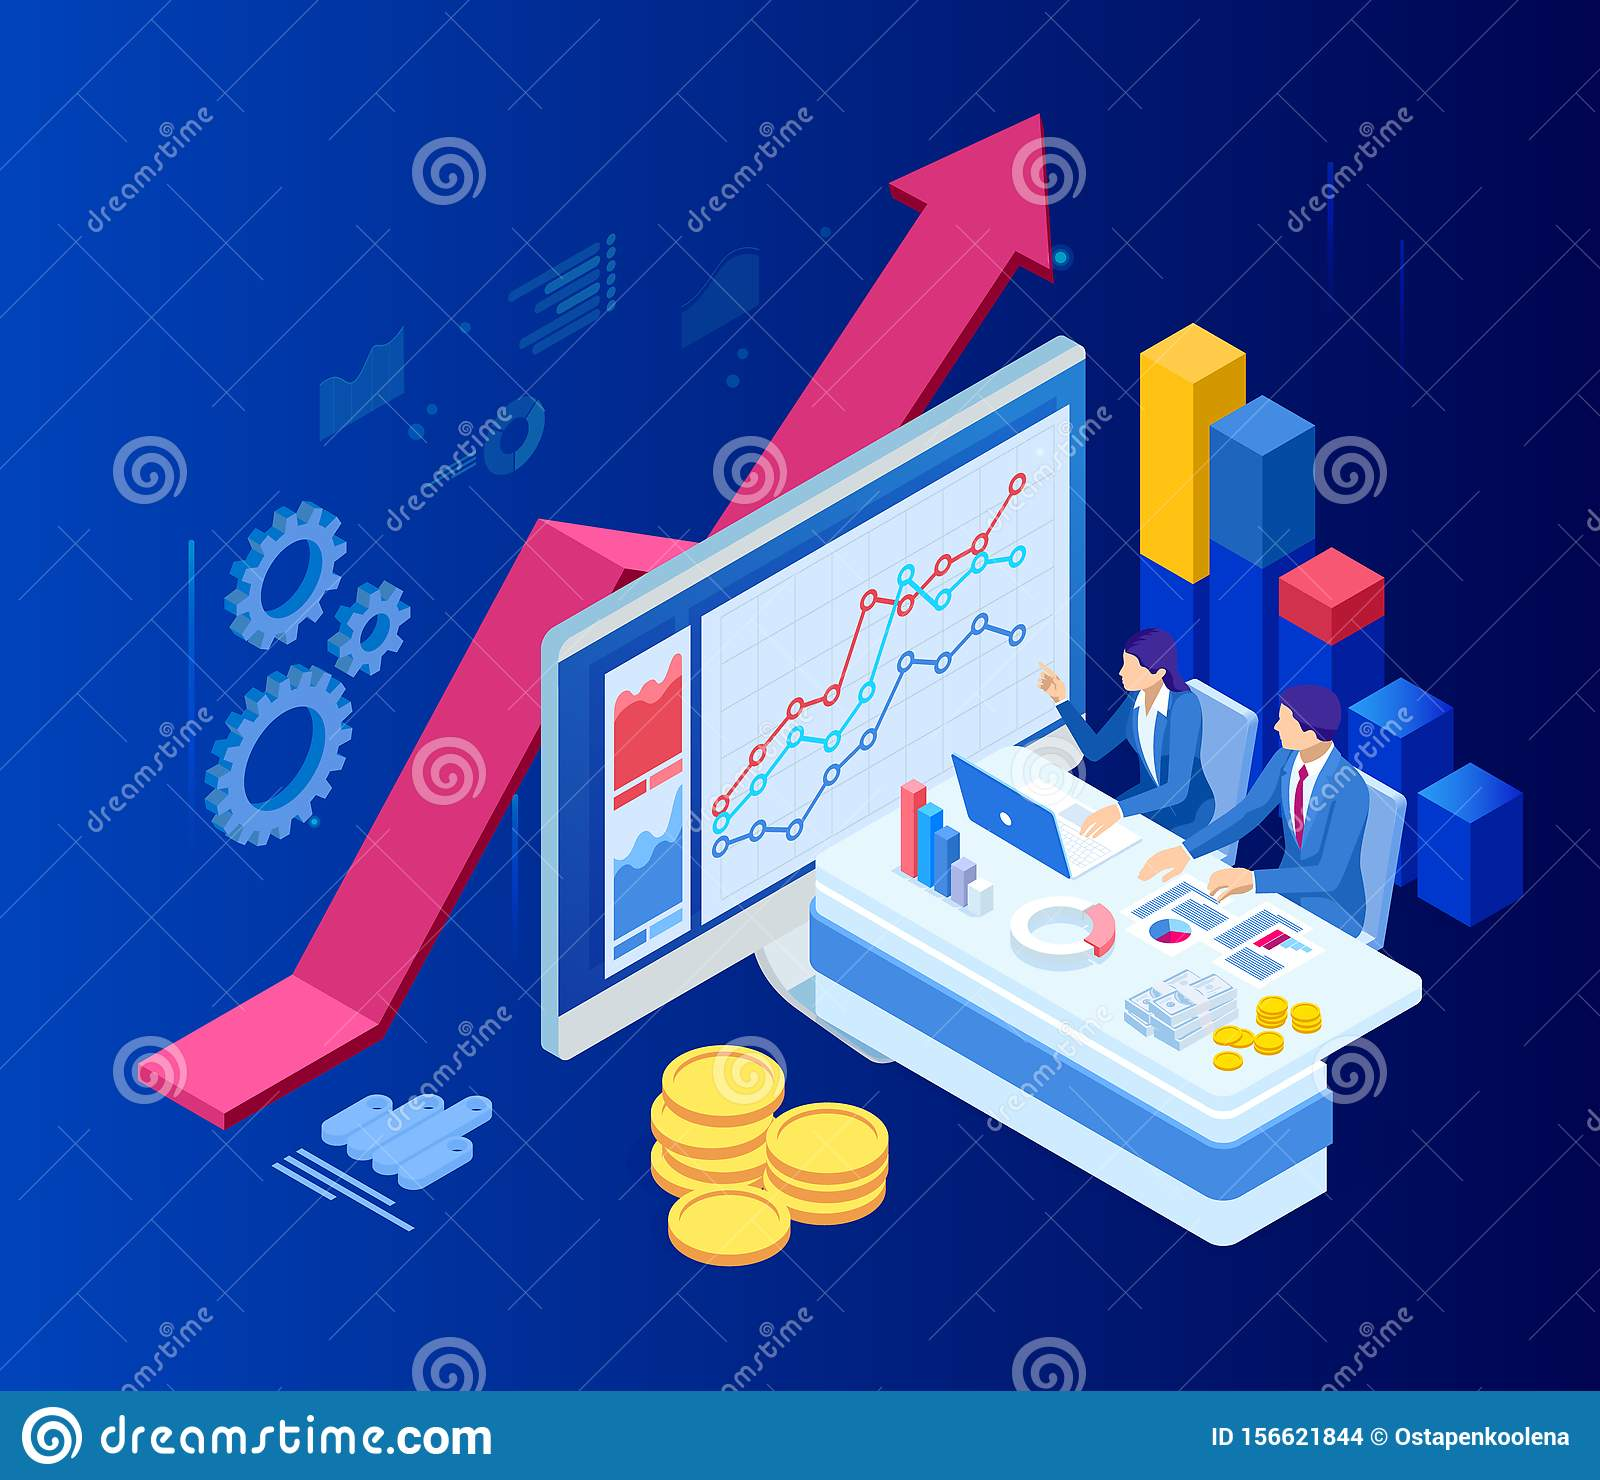 Isometric Web Business Concept Of Financial Administration, Accounting, Analysis